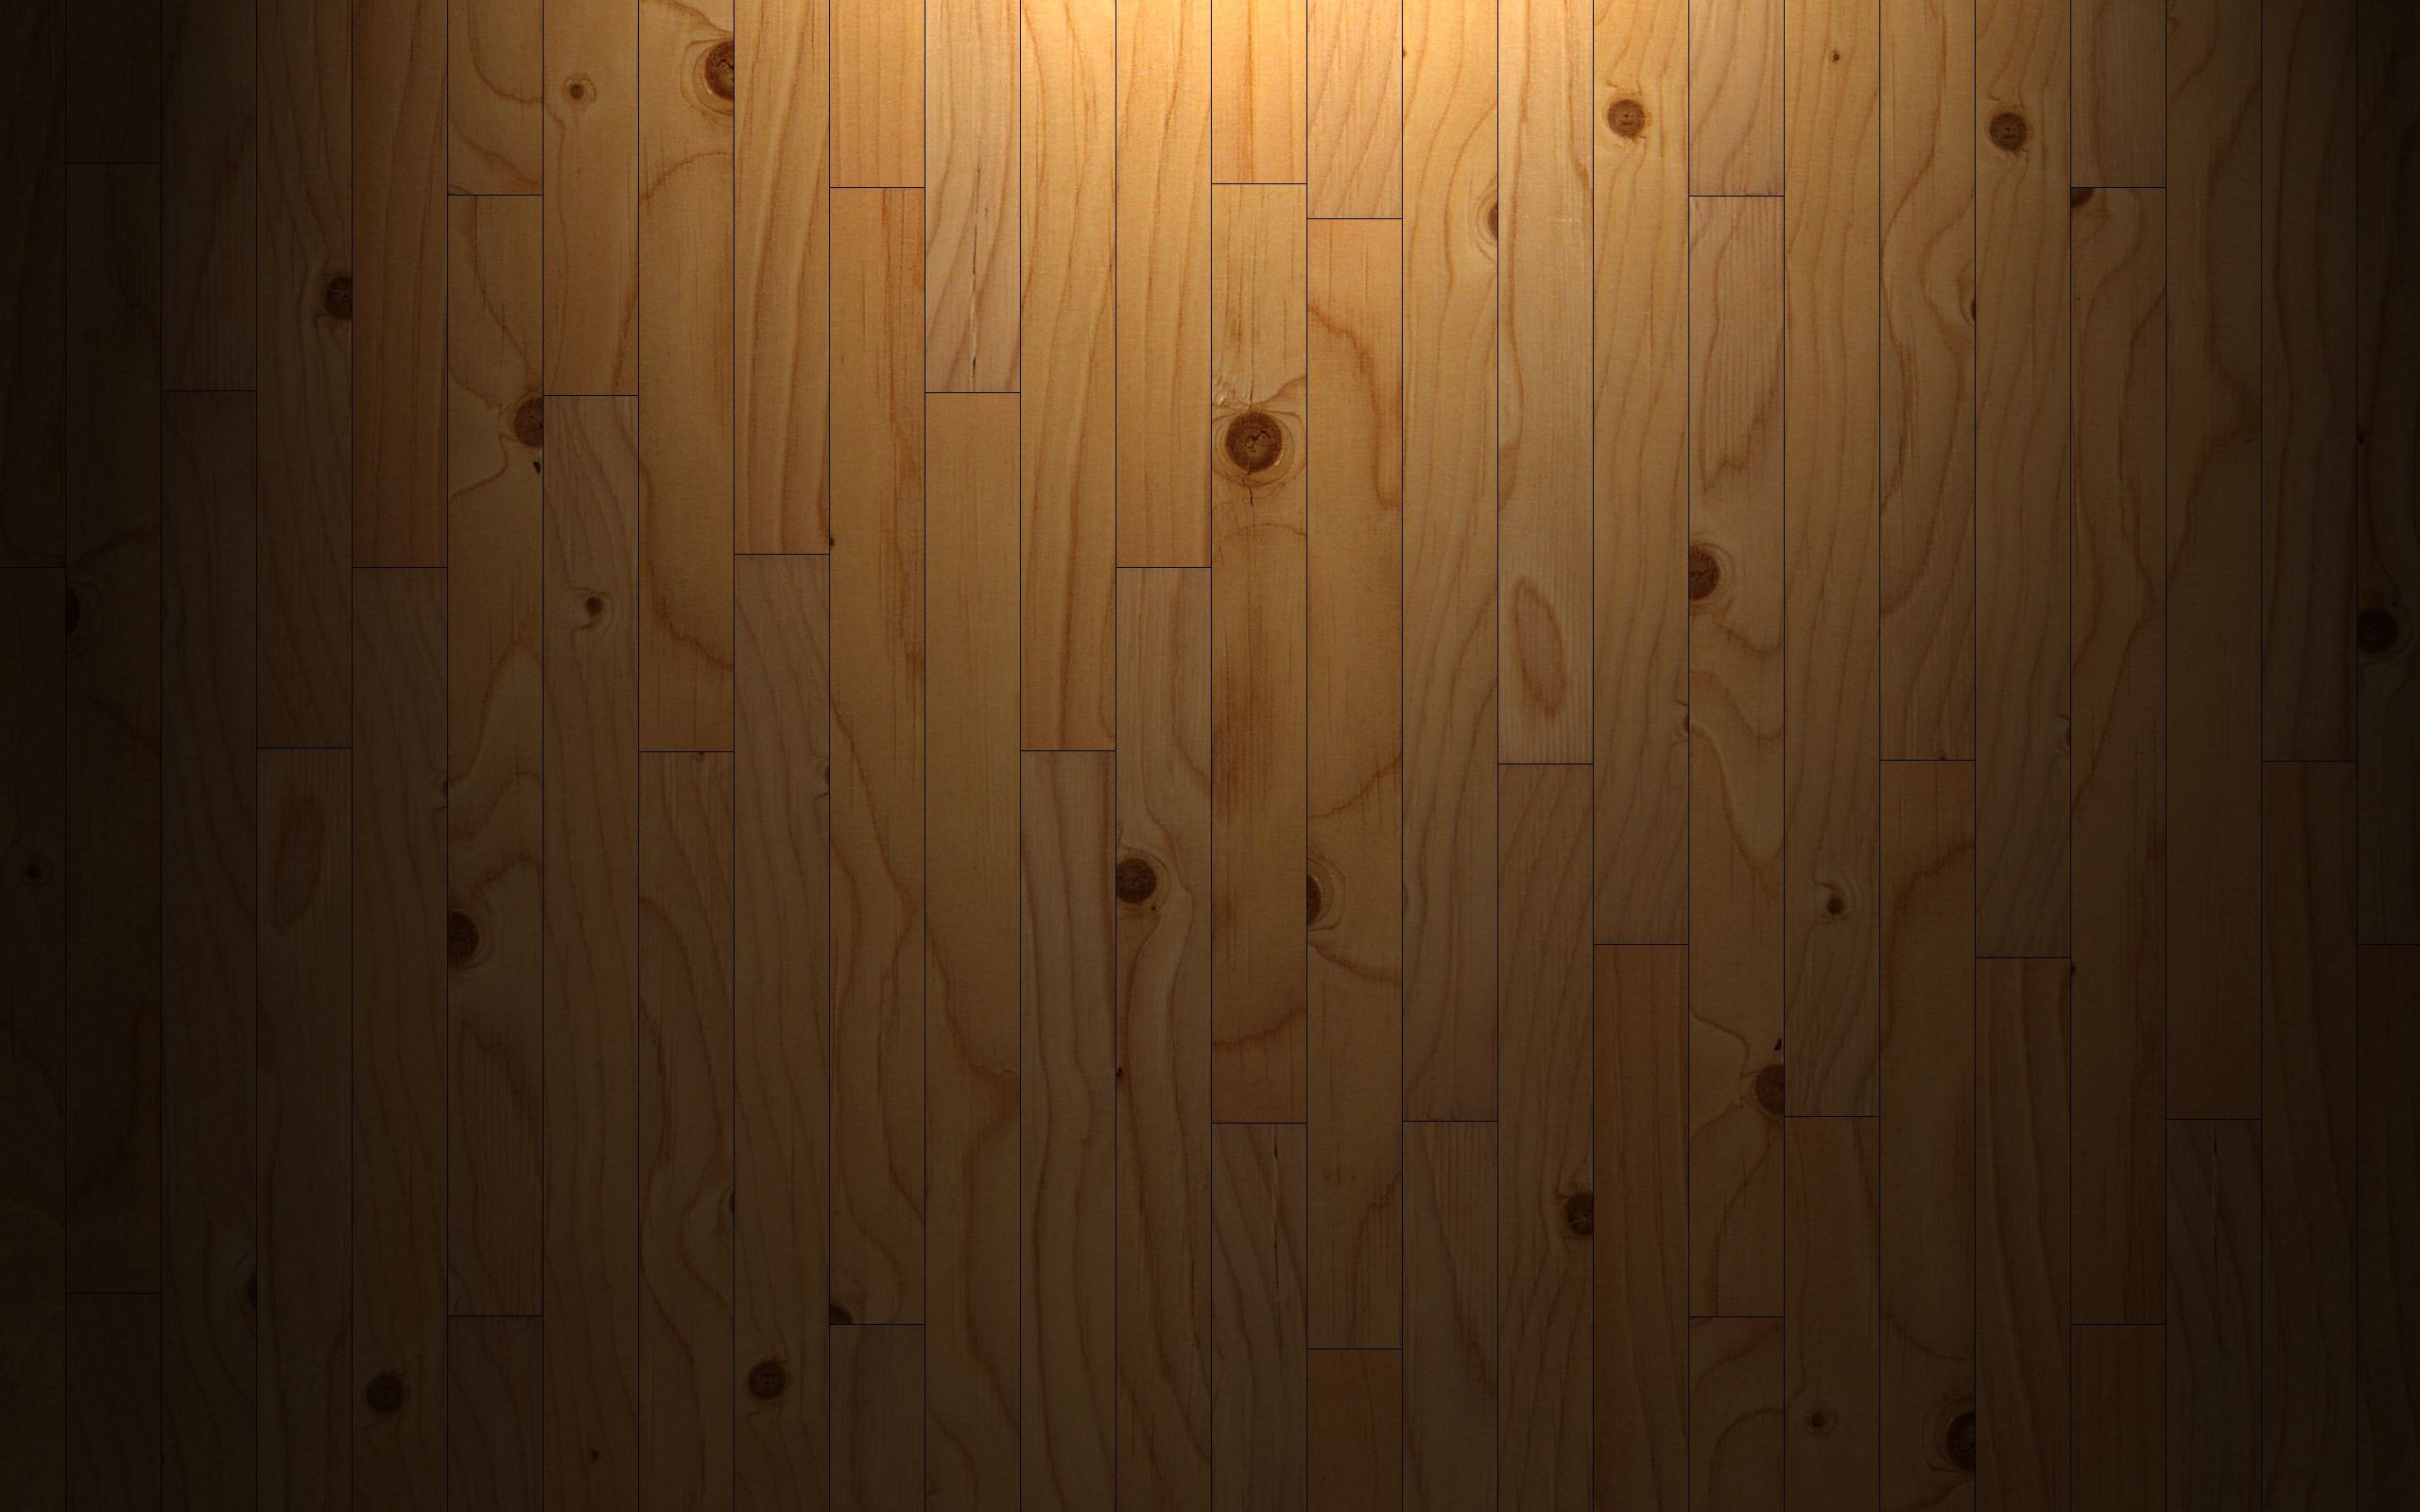 156408 download wallpaper Textures, Texture, Parquet, Planks, Board, Wood, Tree, Stripes, Streaks screensavers and pictures for free